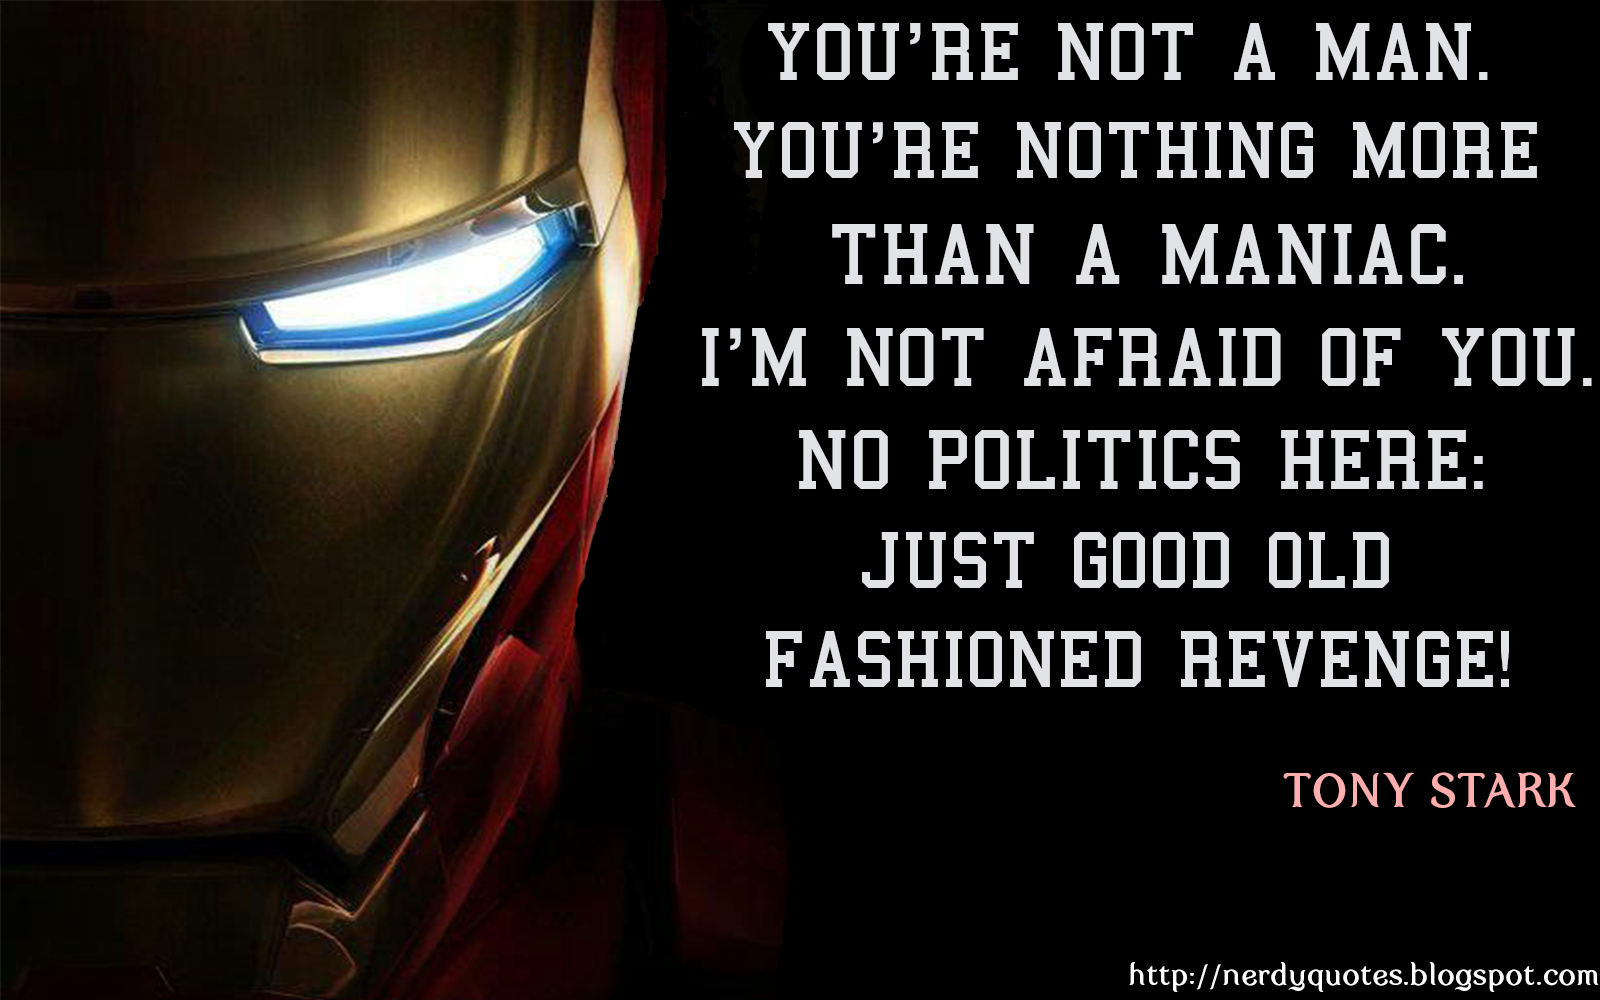 Second quote from Iron Man 3 Movie